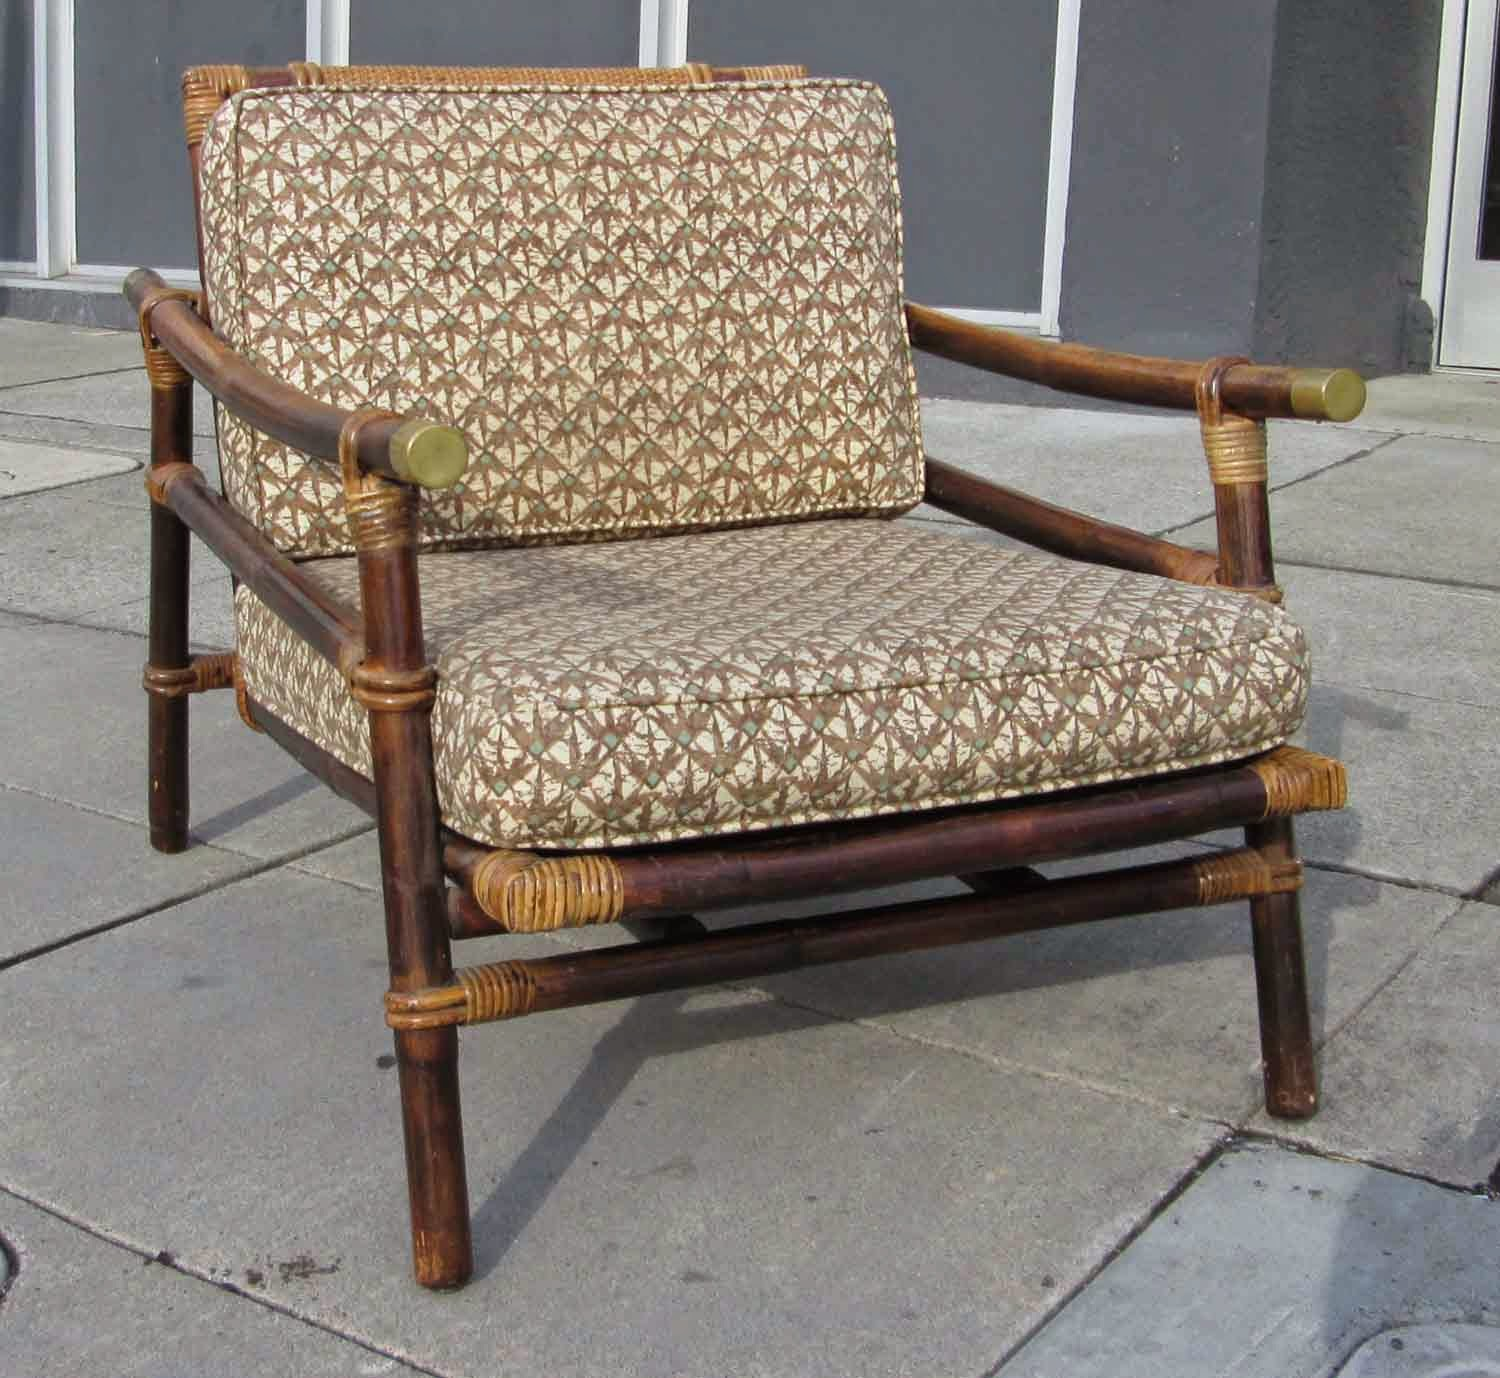 UHURU FURNITURE & COLLECTIBLES SOLD Mid Century Rattan